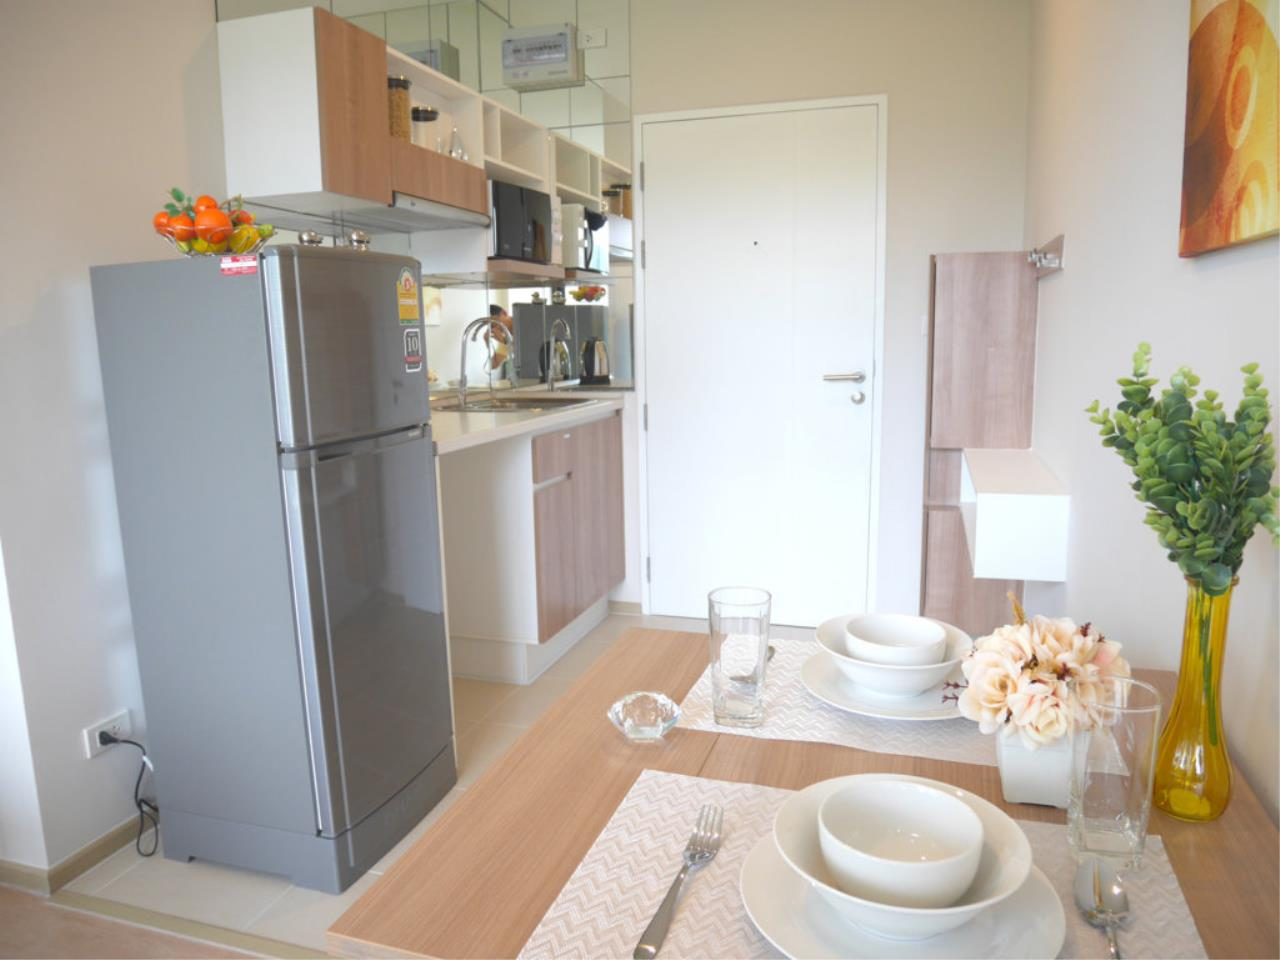 REAL Phuket  Agency's ZCape II Condominium @ Boat Avenue (Laguna) - 1-Bedroom Apartment 9